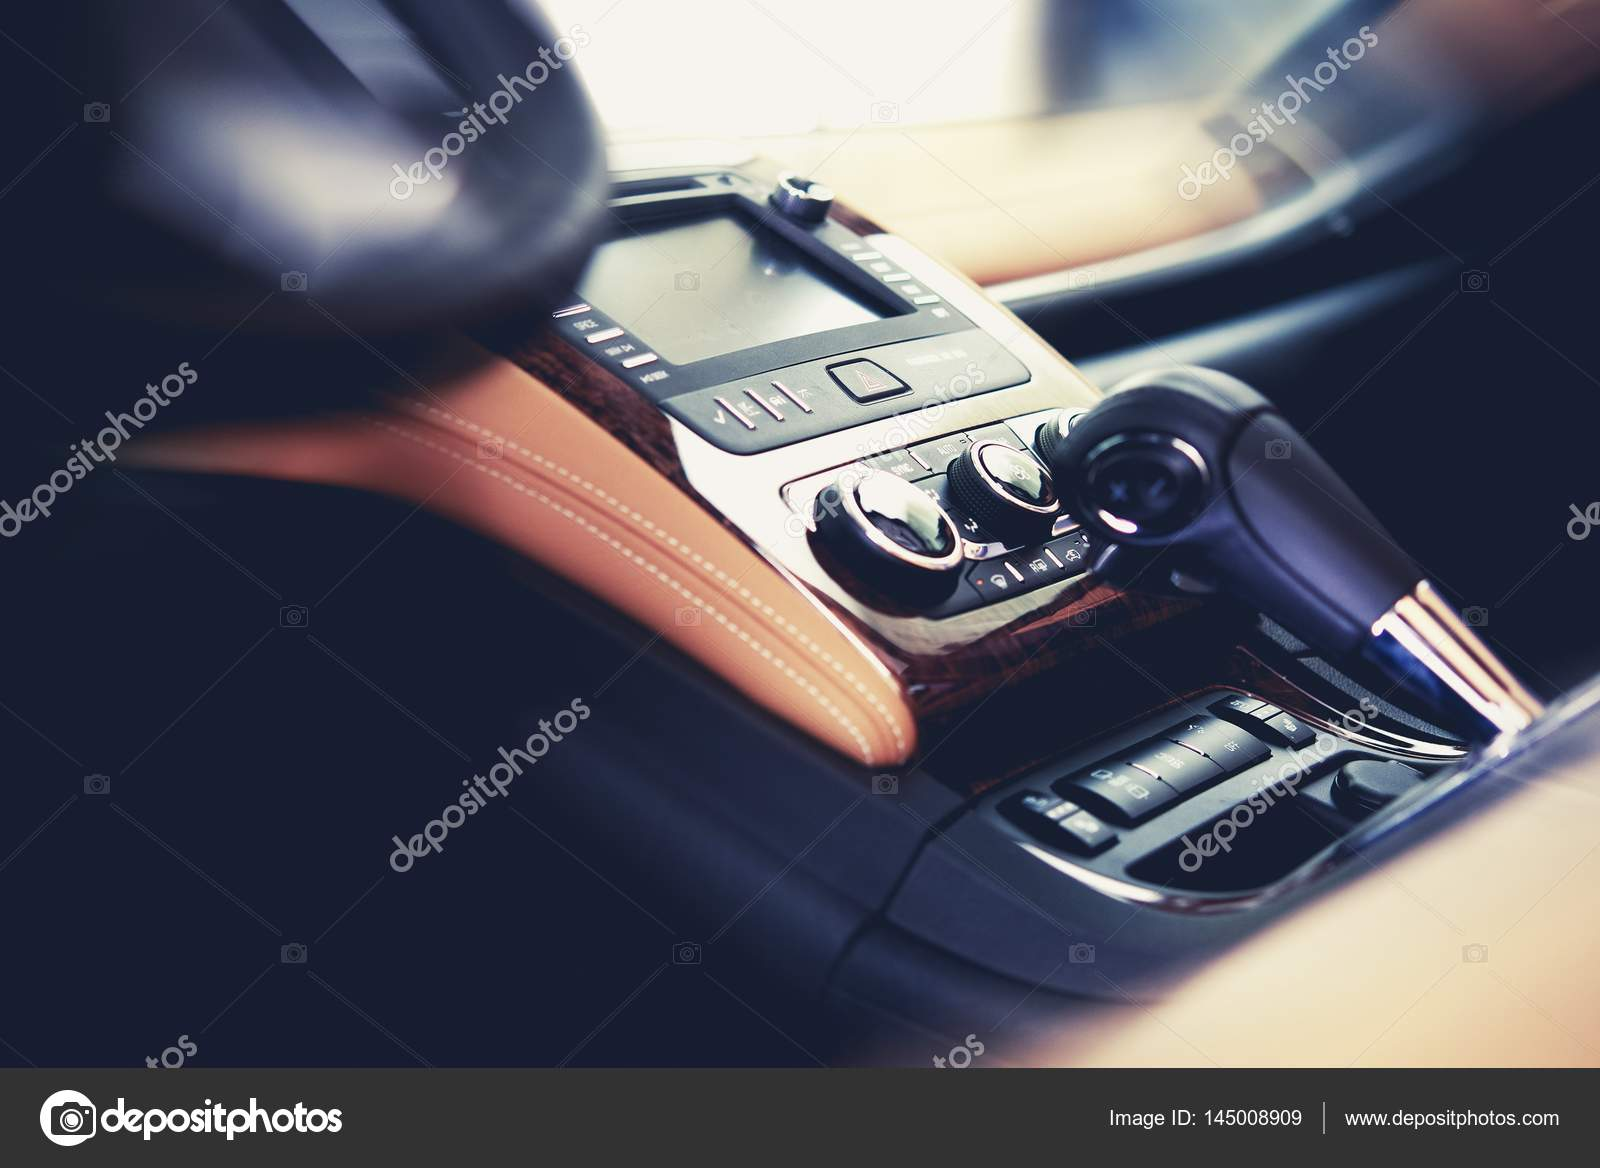 clean car interior stock photo welcomia 145008909